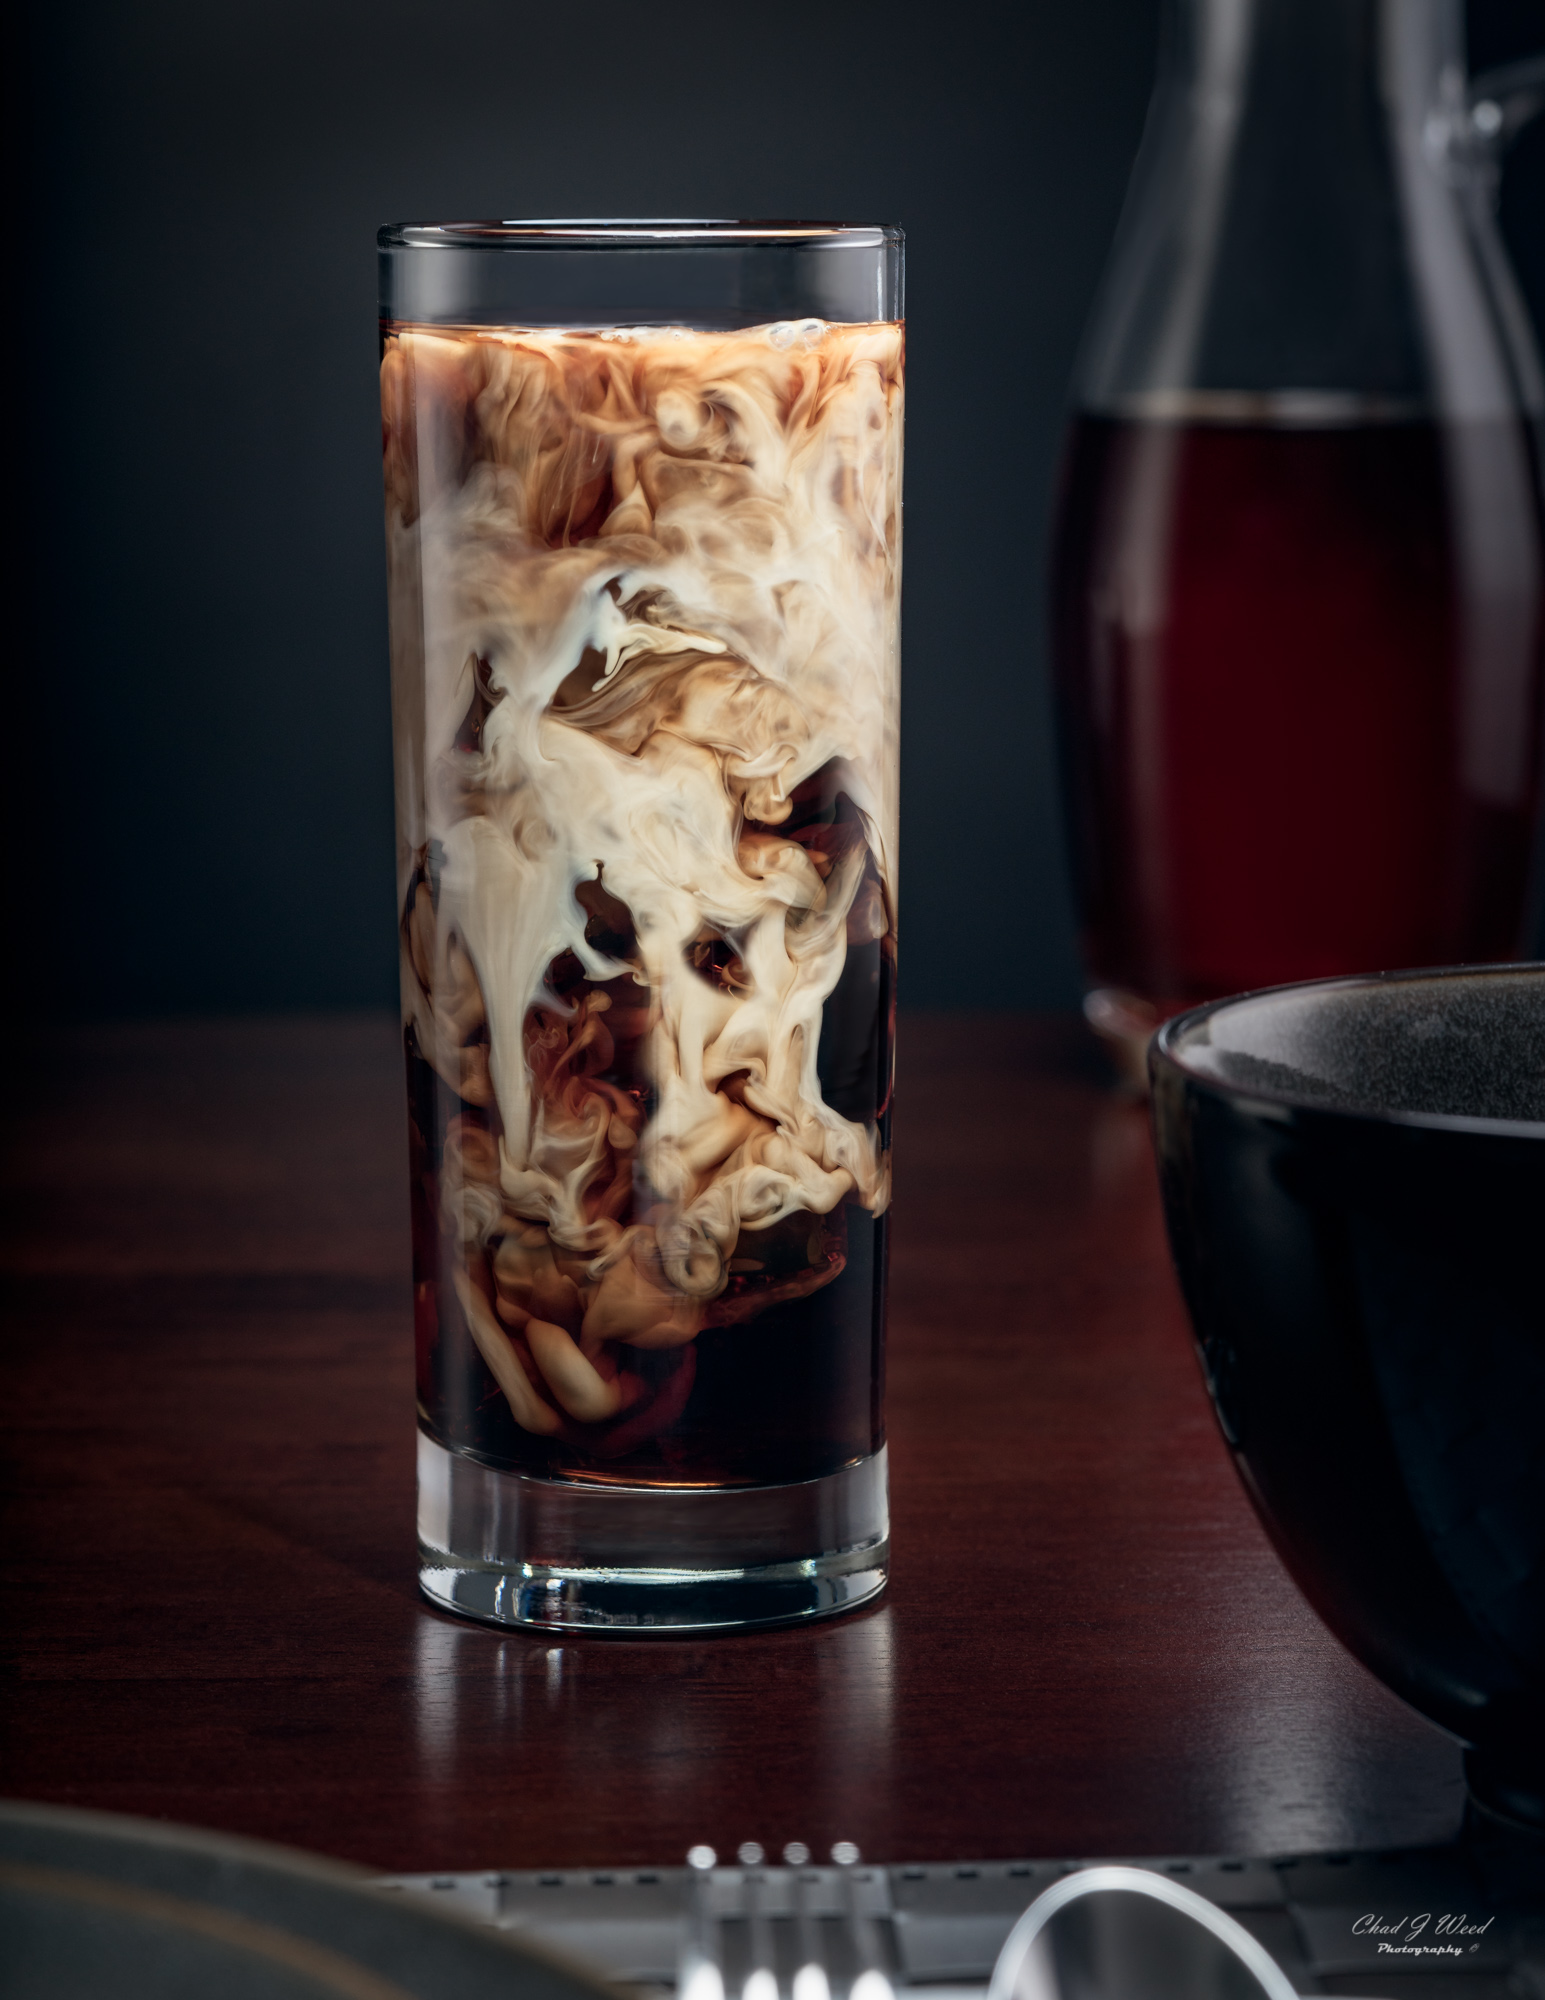 Iced Coffee by Arizona Commercial Beverage Photographer Chad J Weed